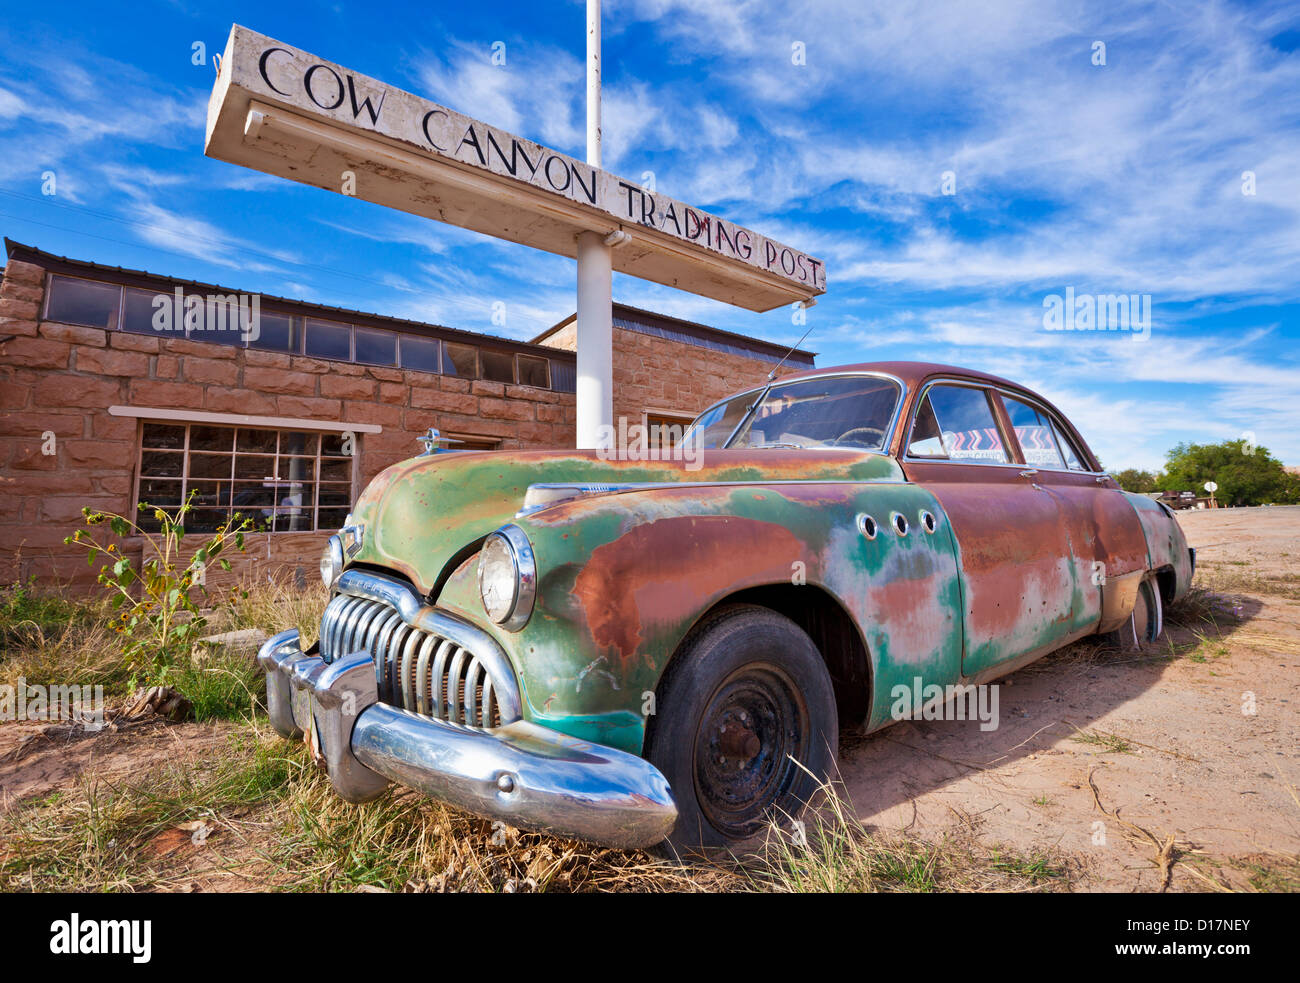 Old rusting Buick Eight american car outside the old Cow Canyon Trading Post Bluff Utah USA United States of America - Stock Image